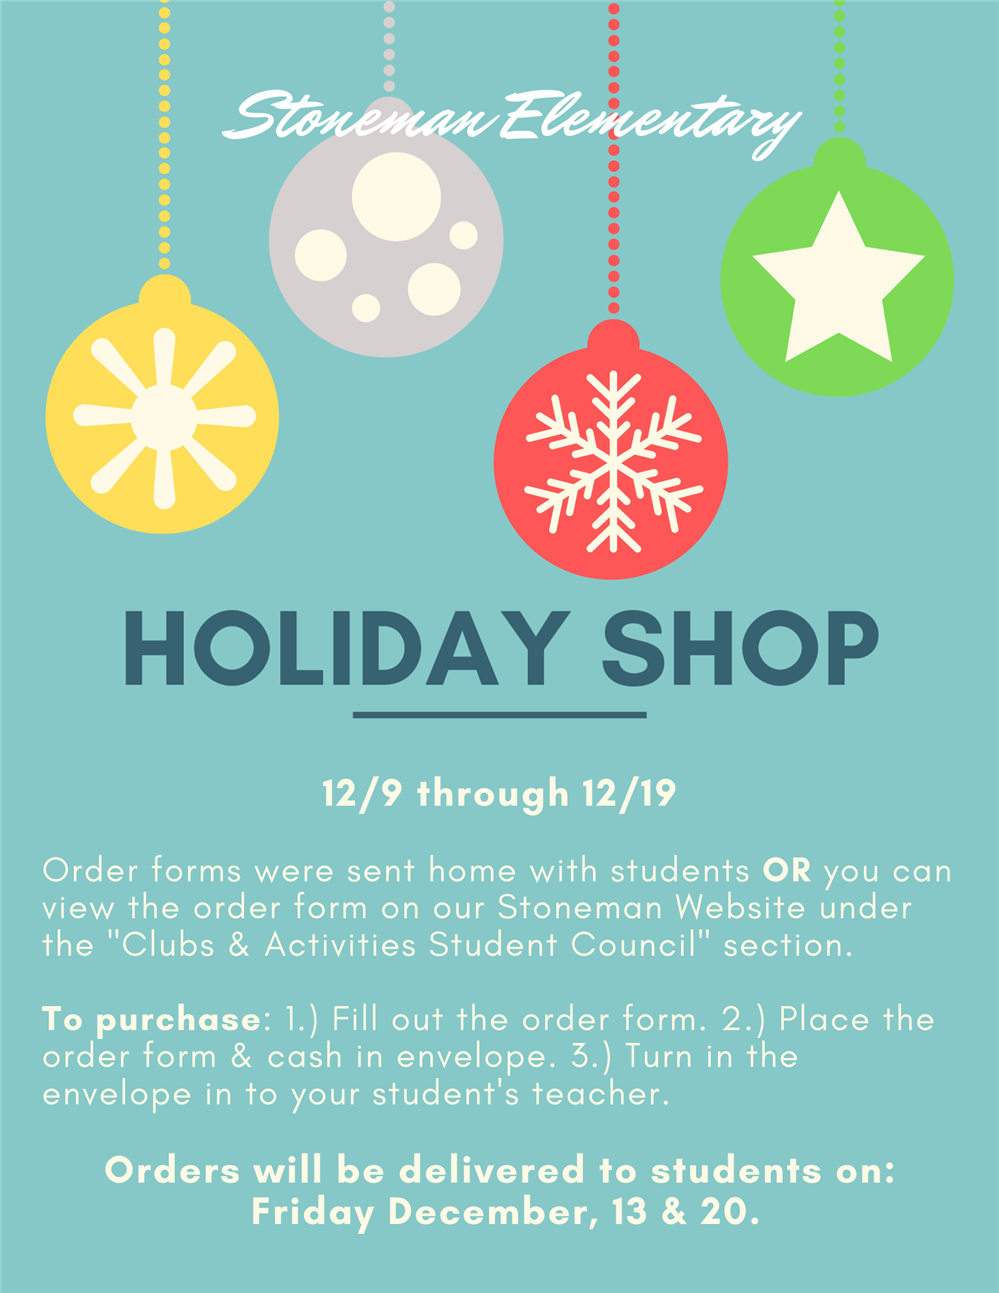 Holiday Shop Flyer